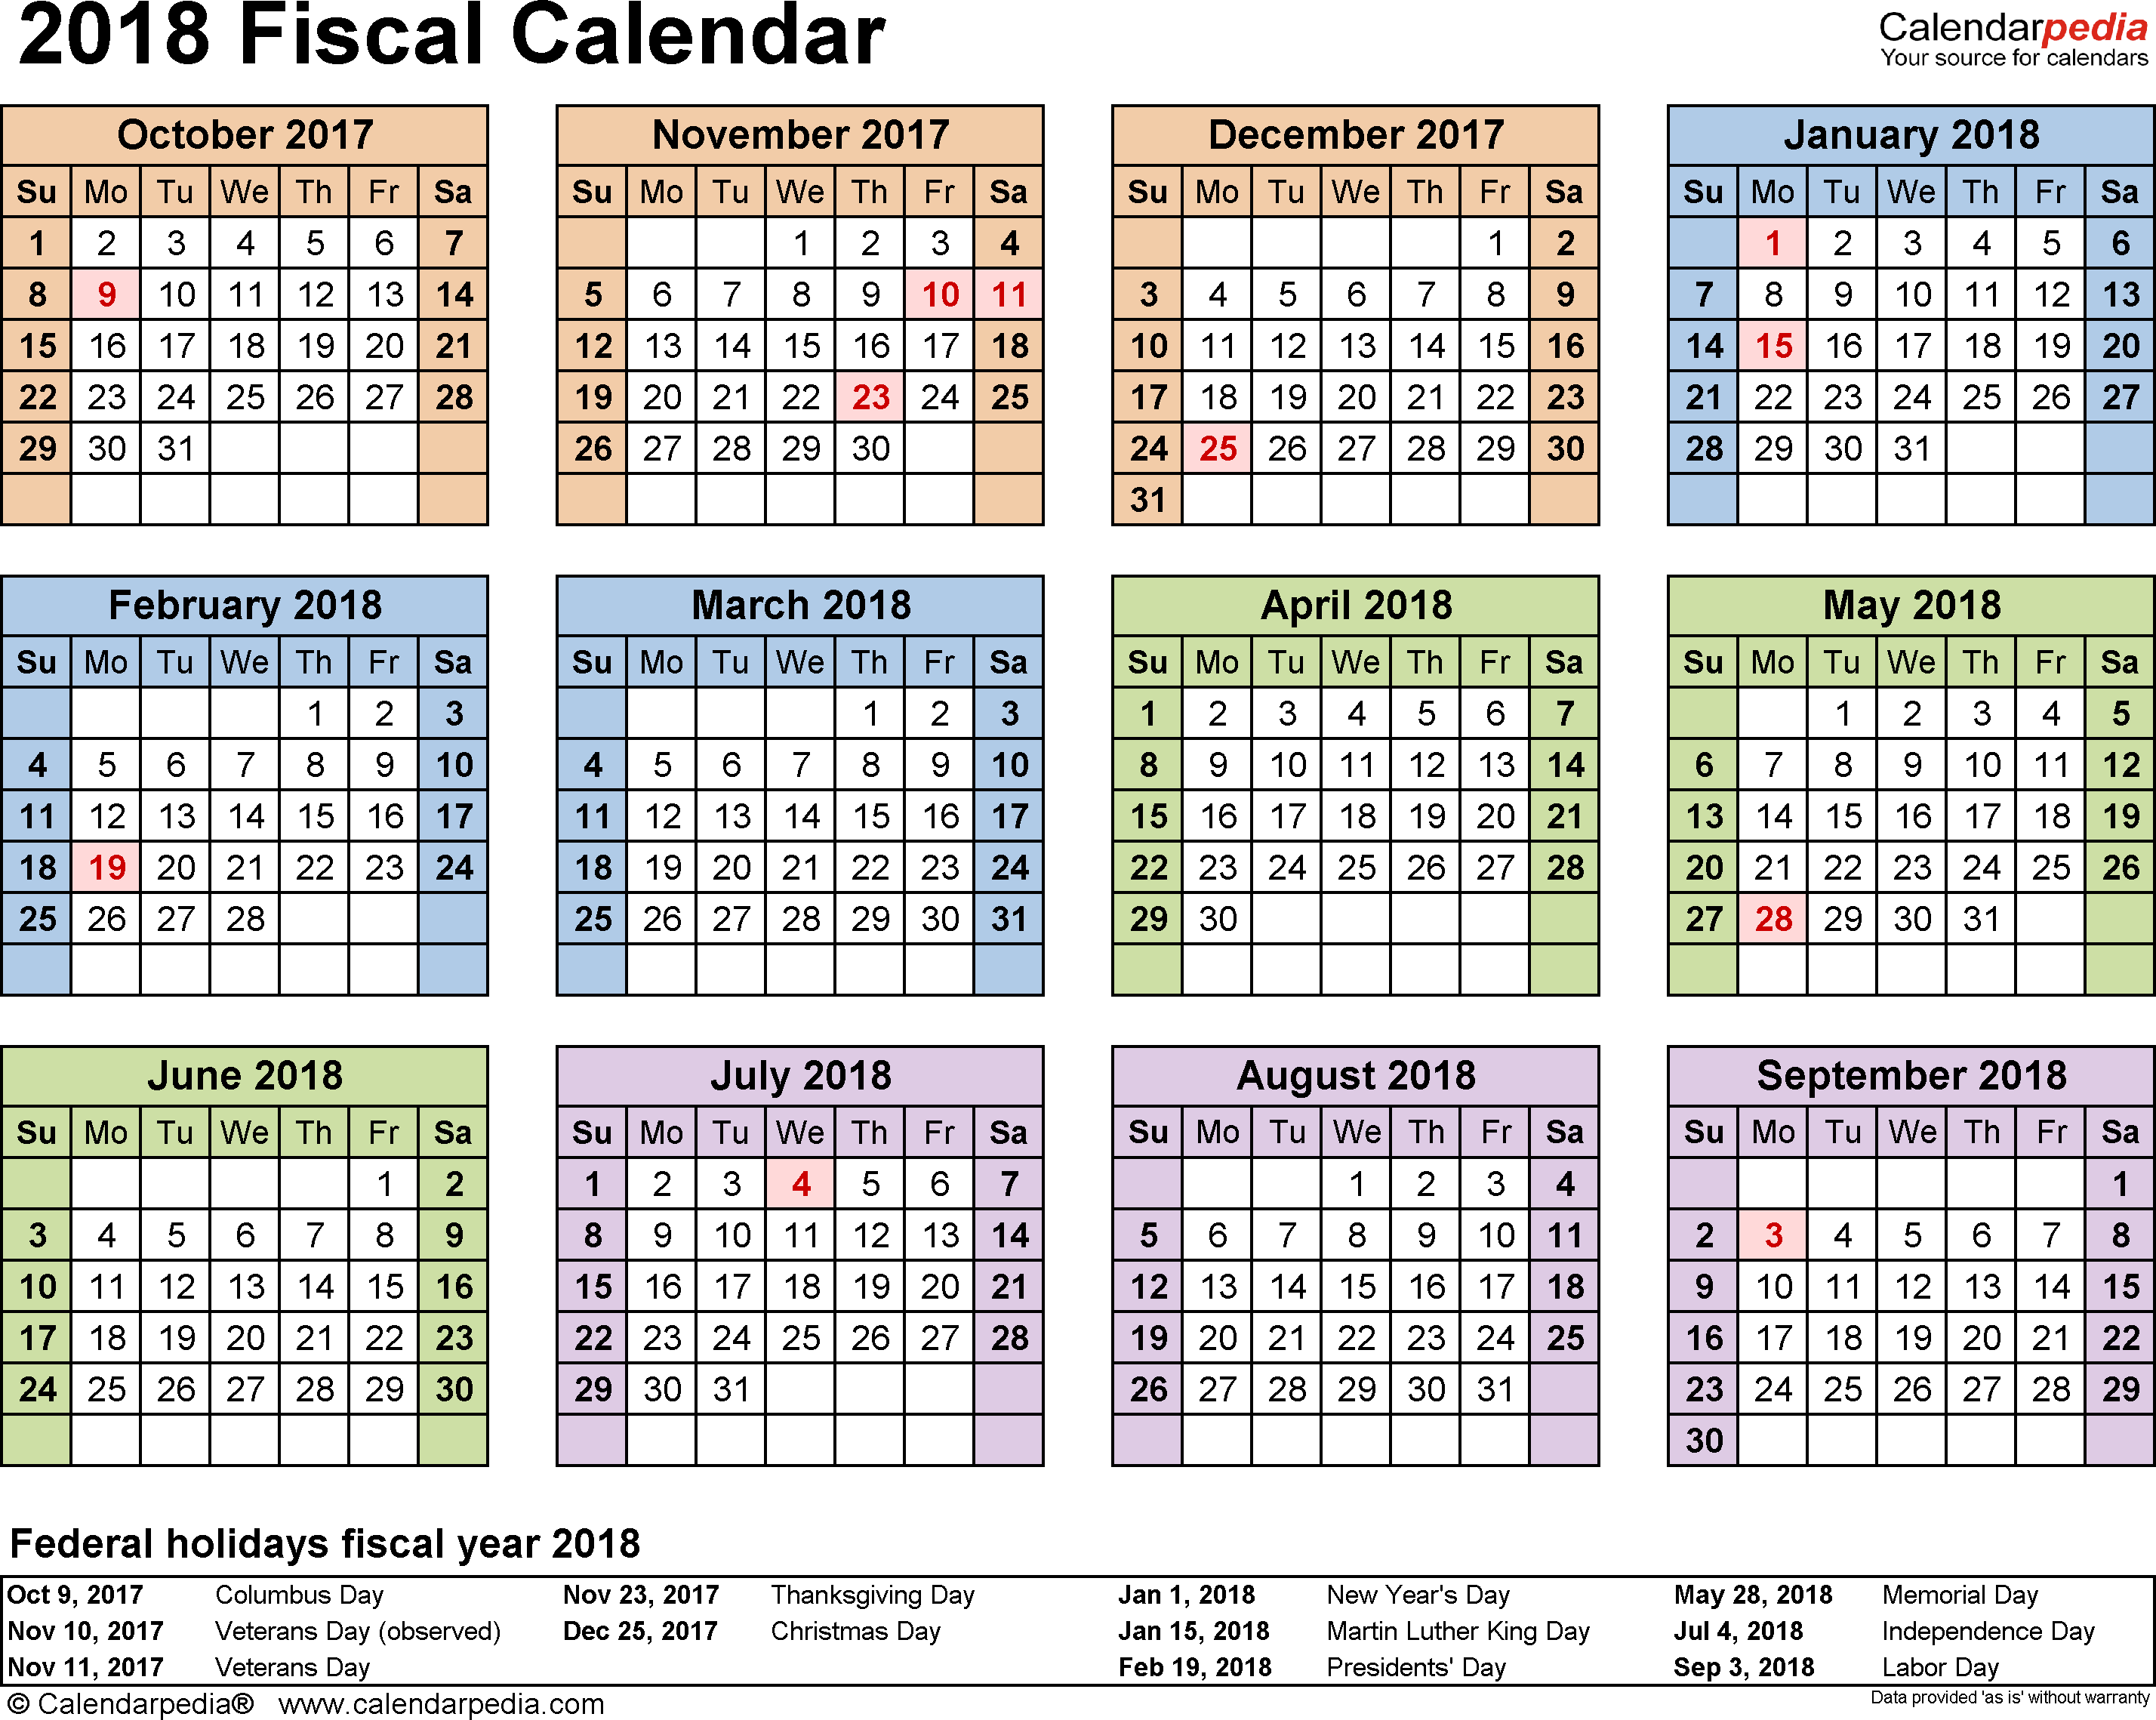 Template 4: Fiscal year calendar 2018 for Excel, landscape orientation, year at a glance, 1 page